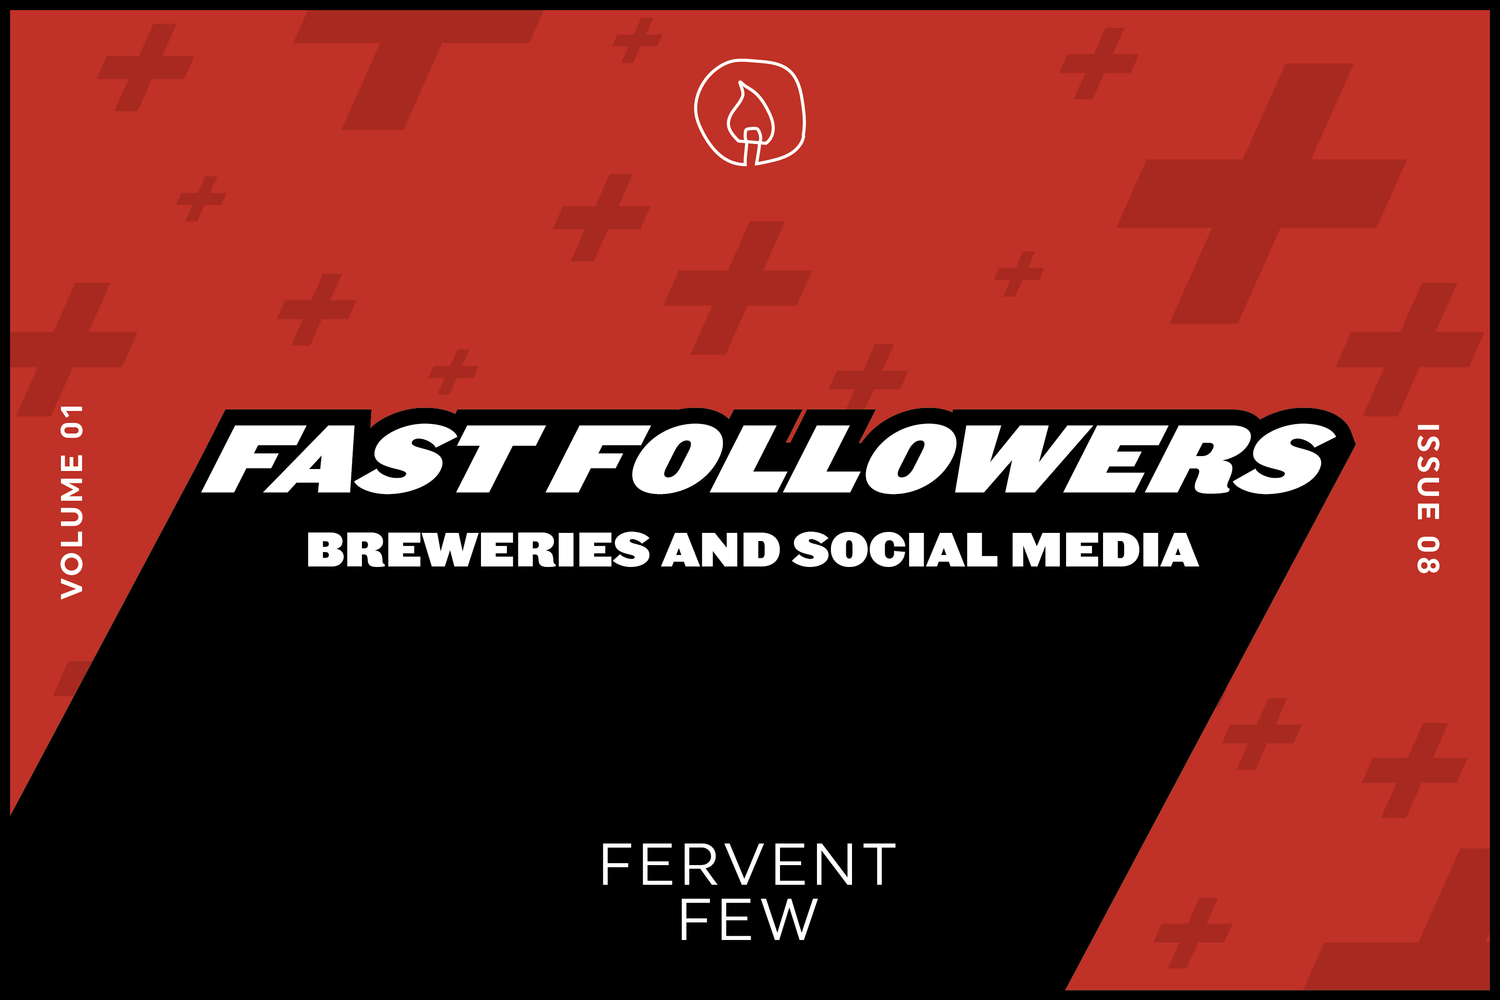 Fervent Few — Fast Followers: Breweries and Social Media